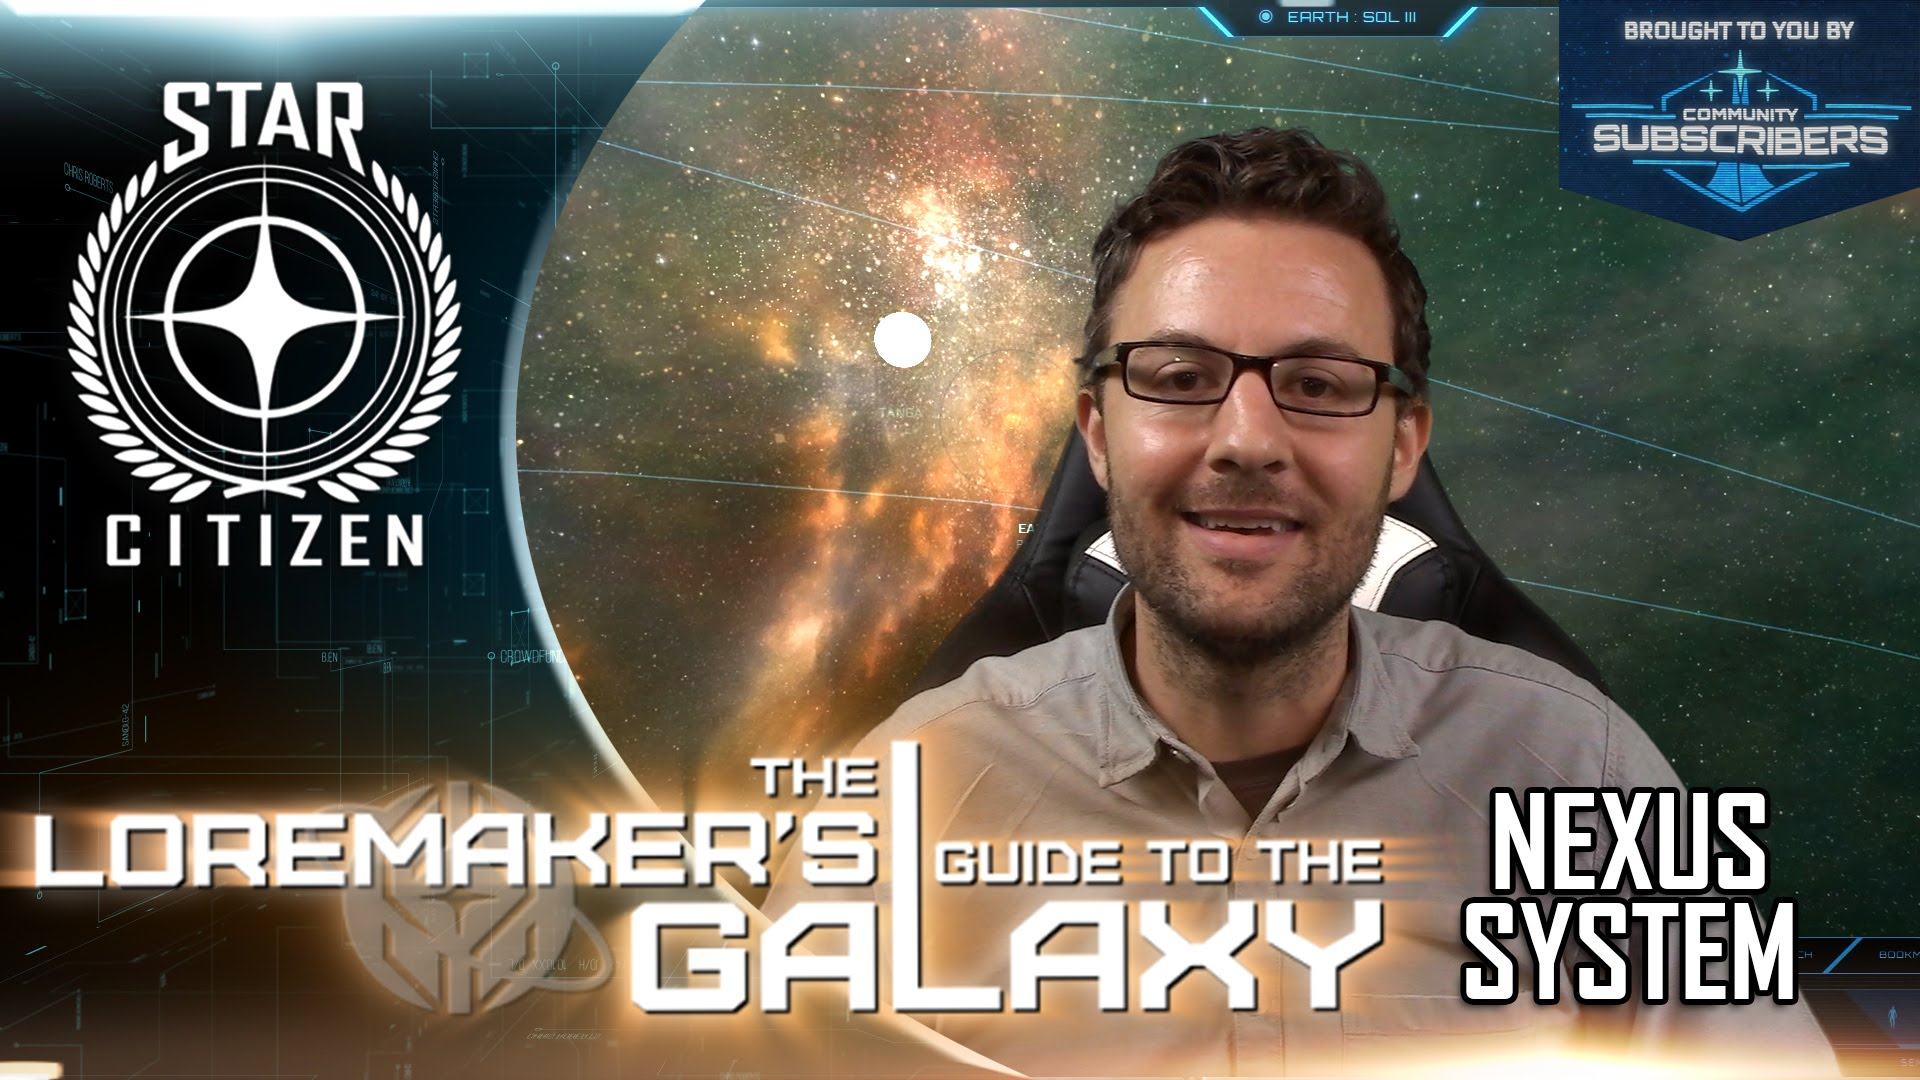 Star Citizen: Loremaker's Guide to the Galaxy - Nexus System